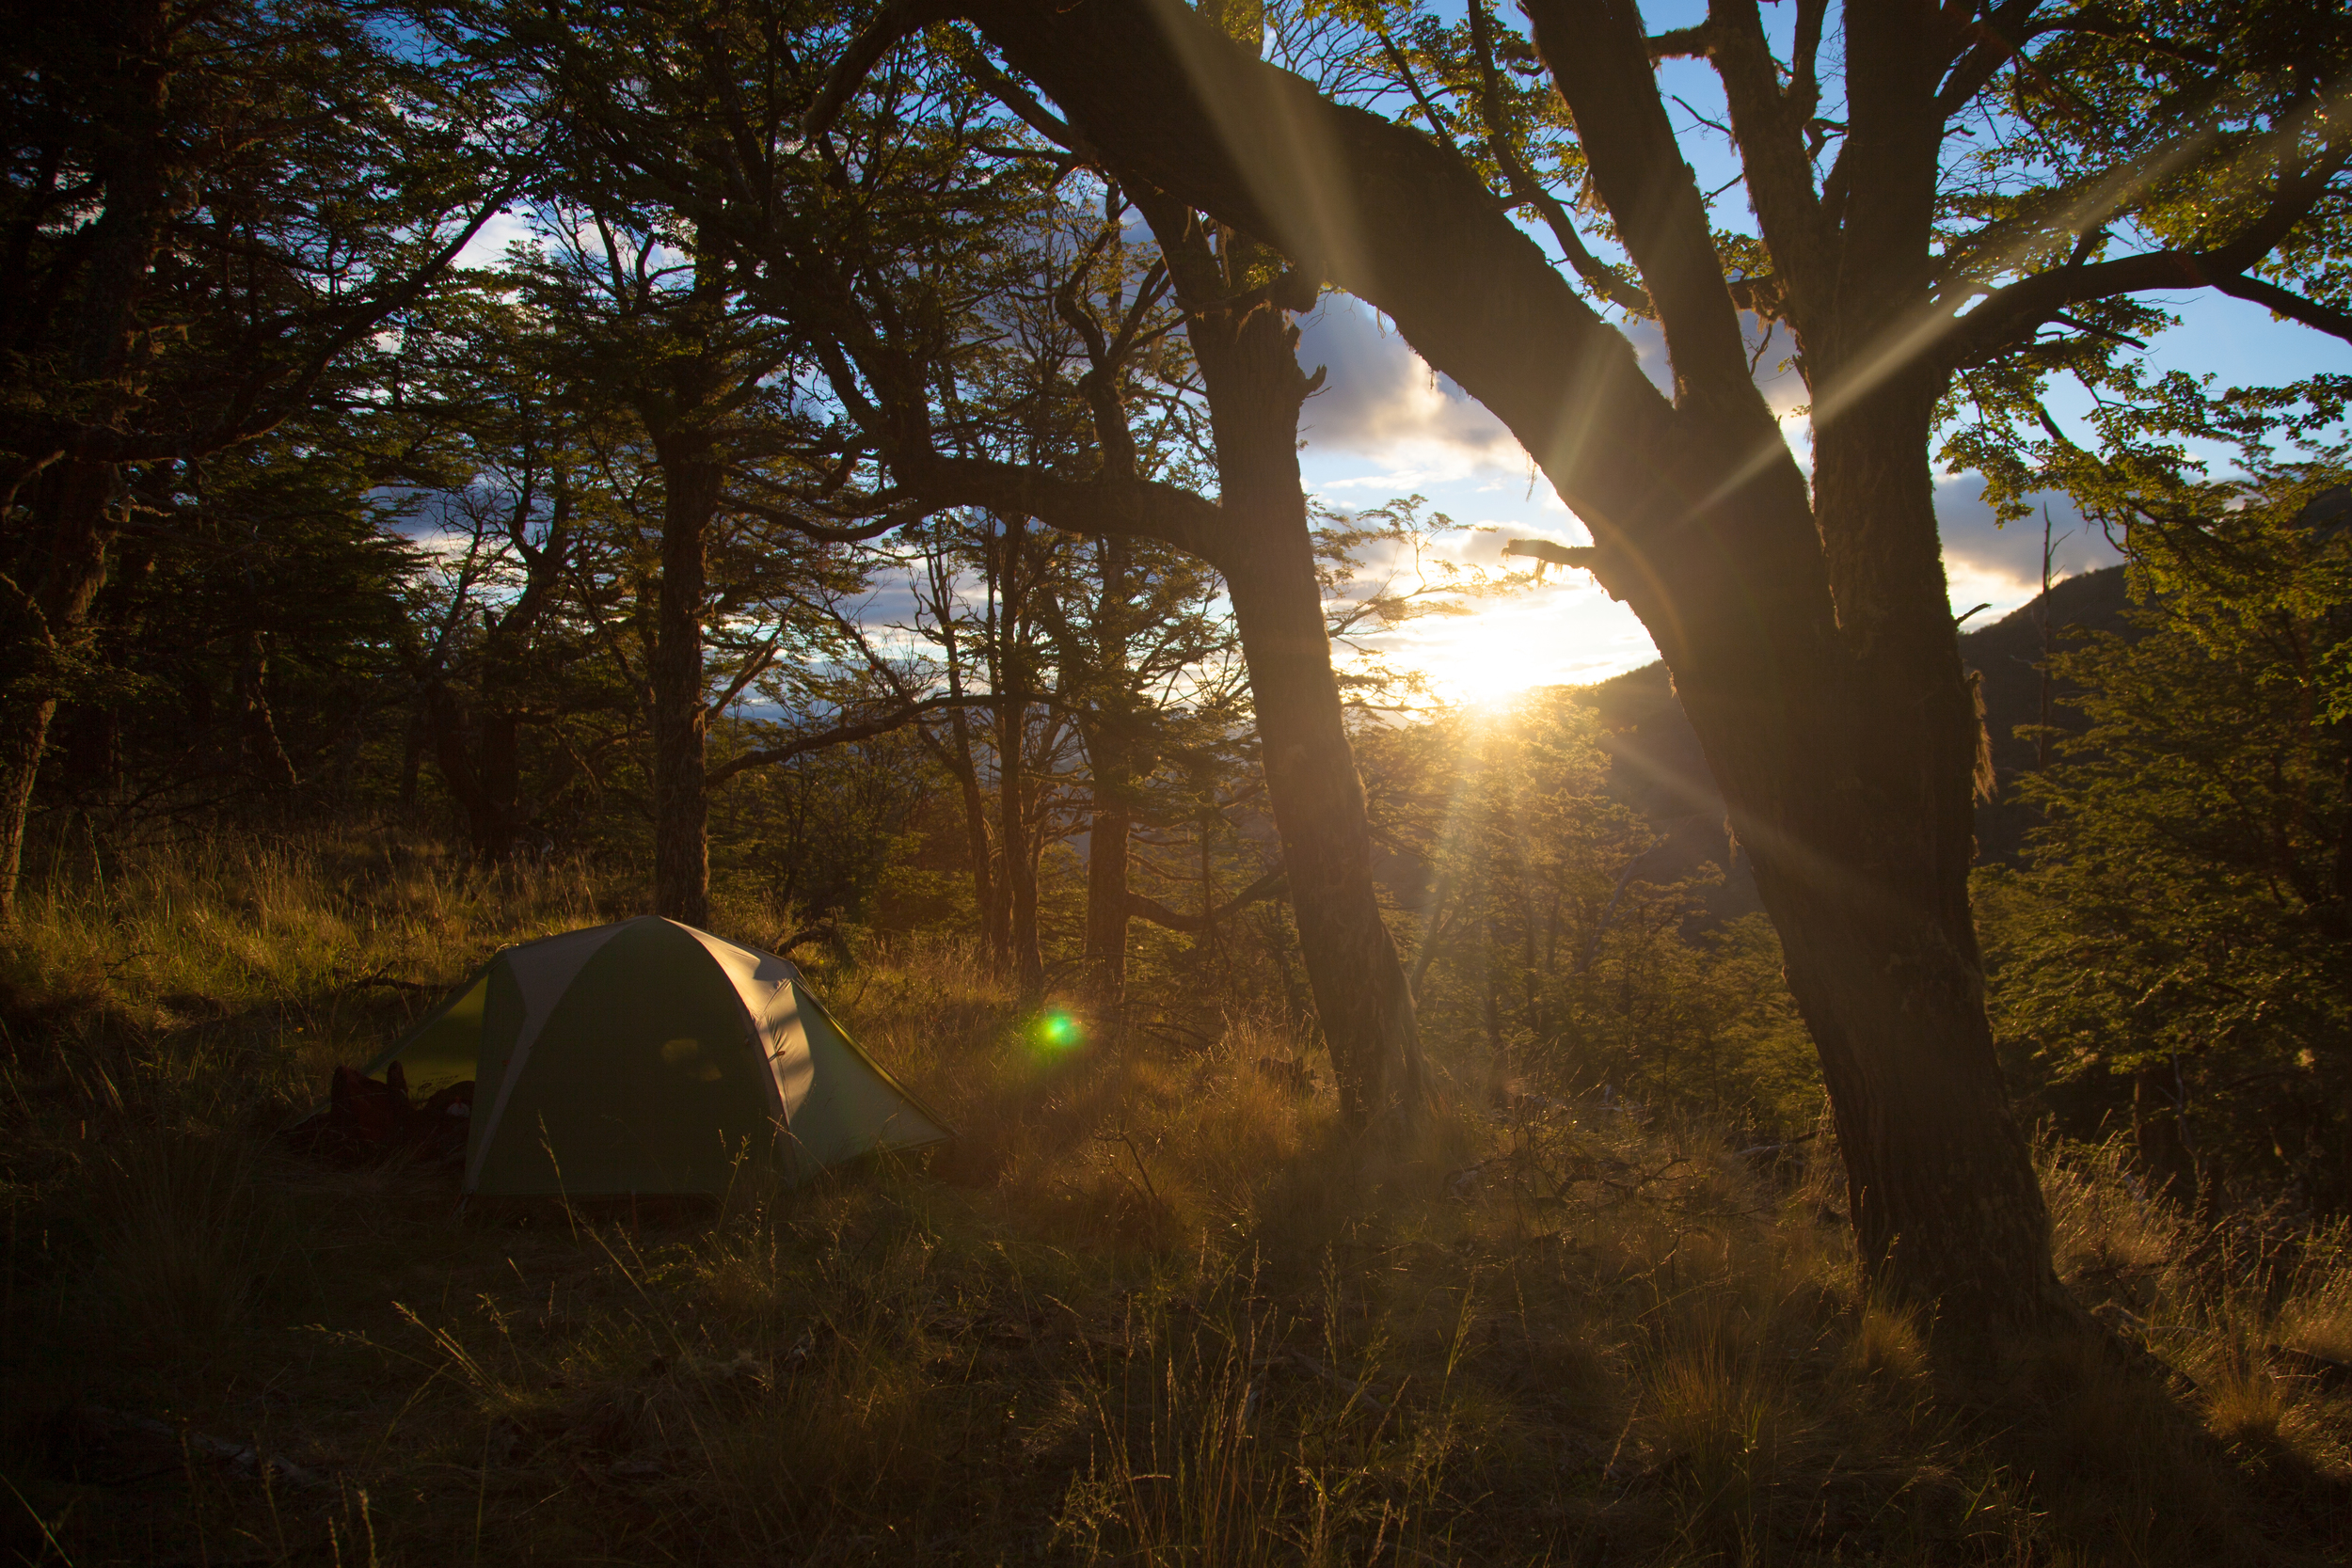 Campsite in the Patagonia National Park; volunteer